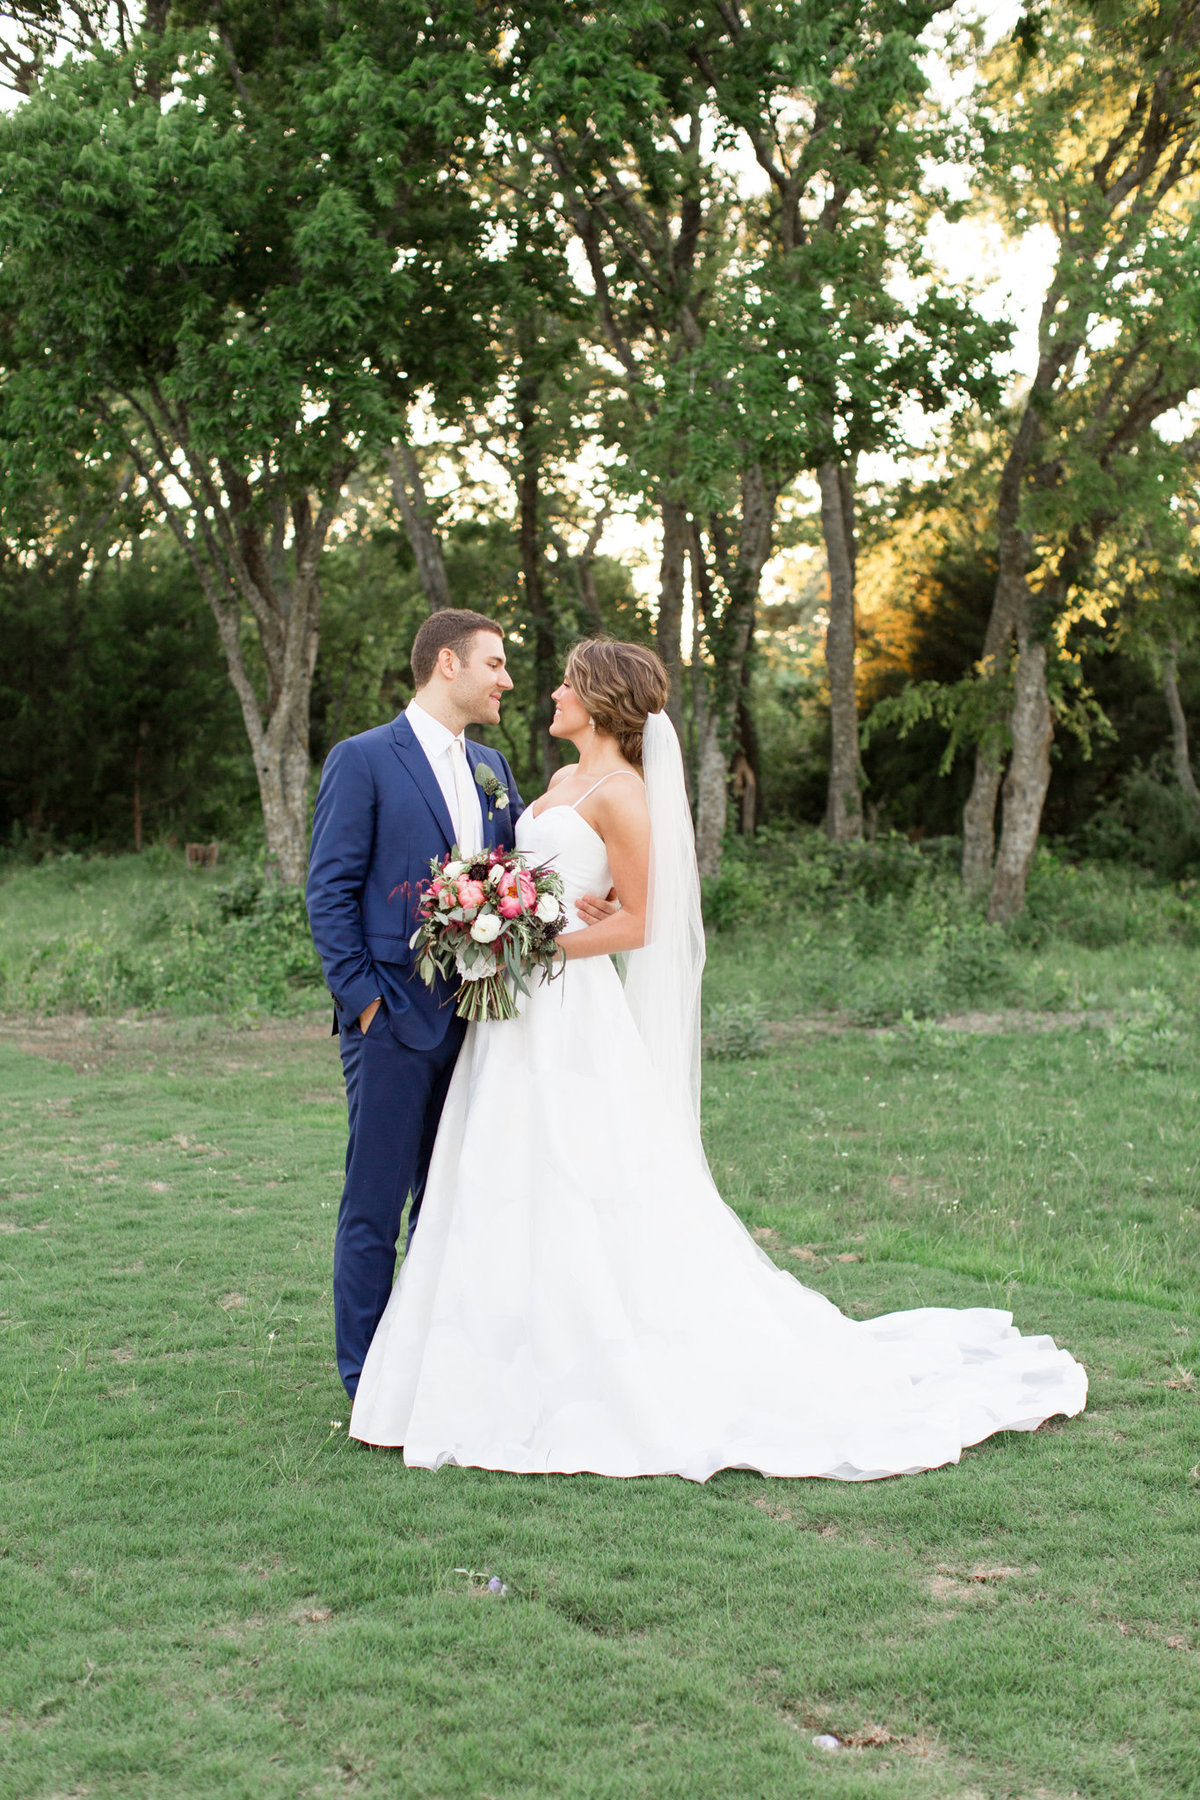 Brianna & Wes | Dallas Wedding Photographer | Sami Kathryn Photography-8402